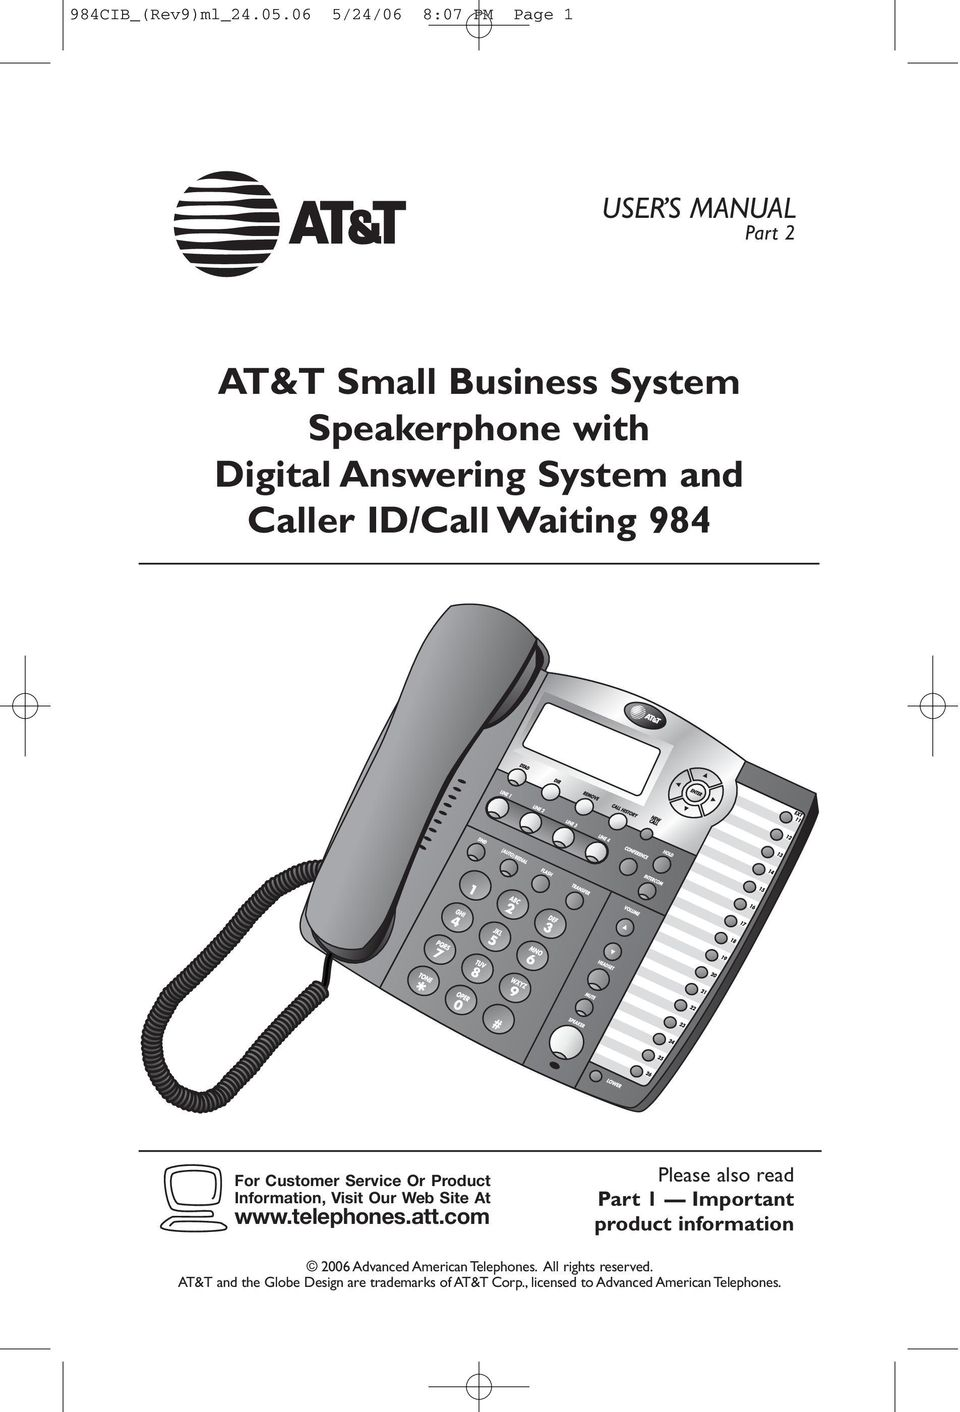 and Caller ID/Call Watng 984 For Customer Servce Or Product Informaton, Vst Our Web Ste At www.telephones.att.